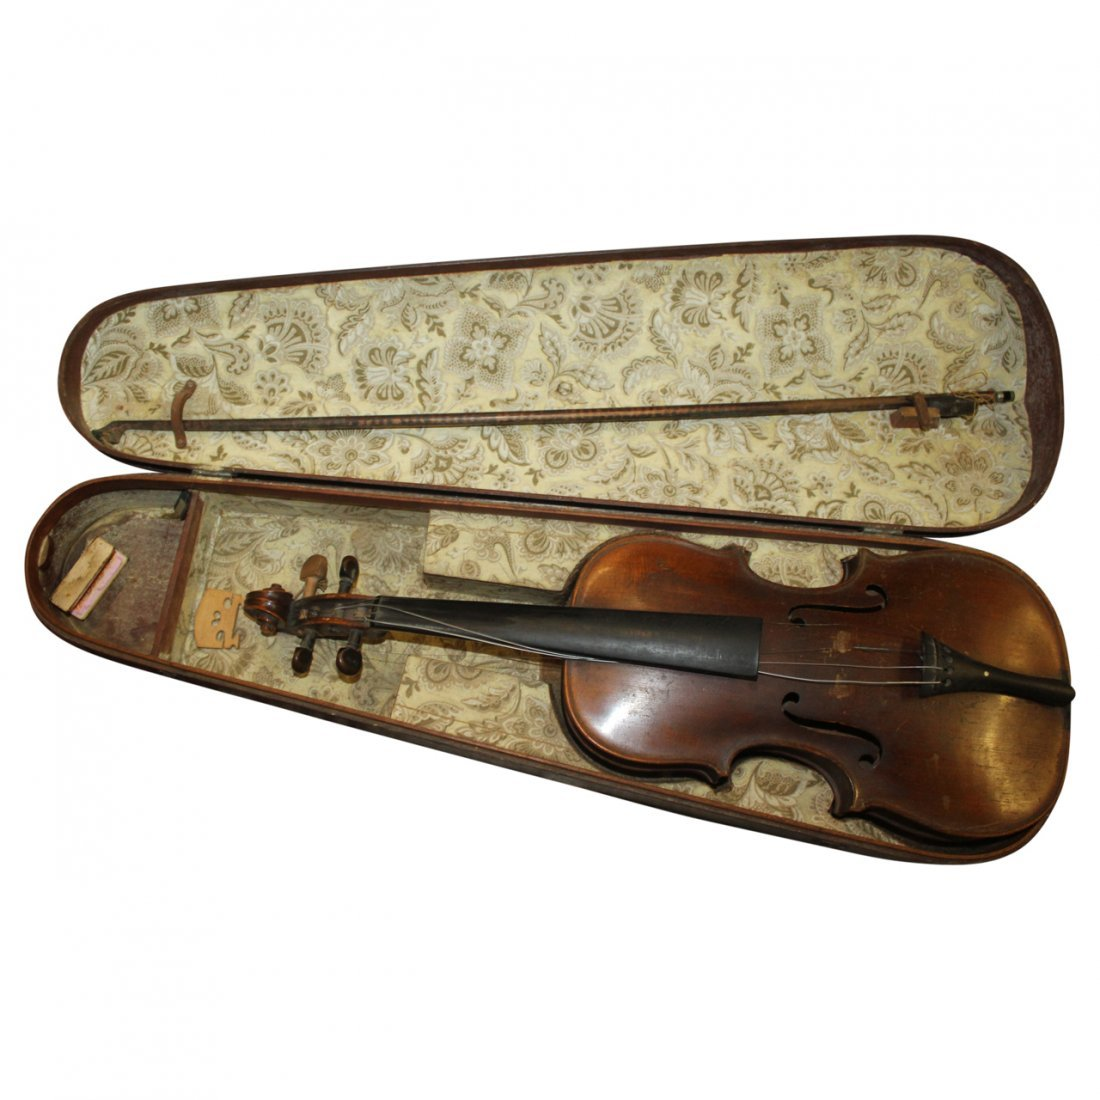 Antique Violin with Wood Fitted Case Signed HOPE